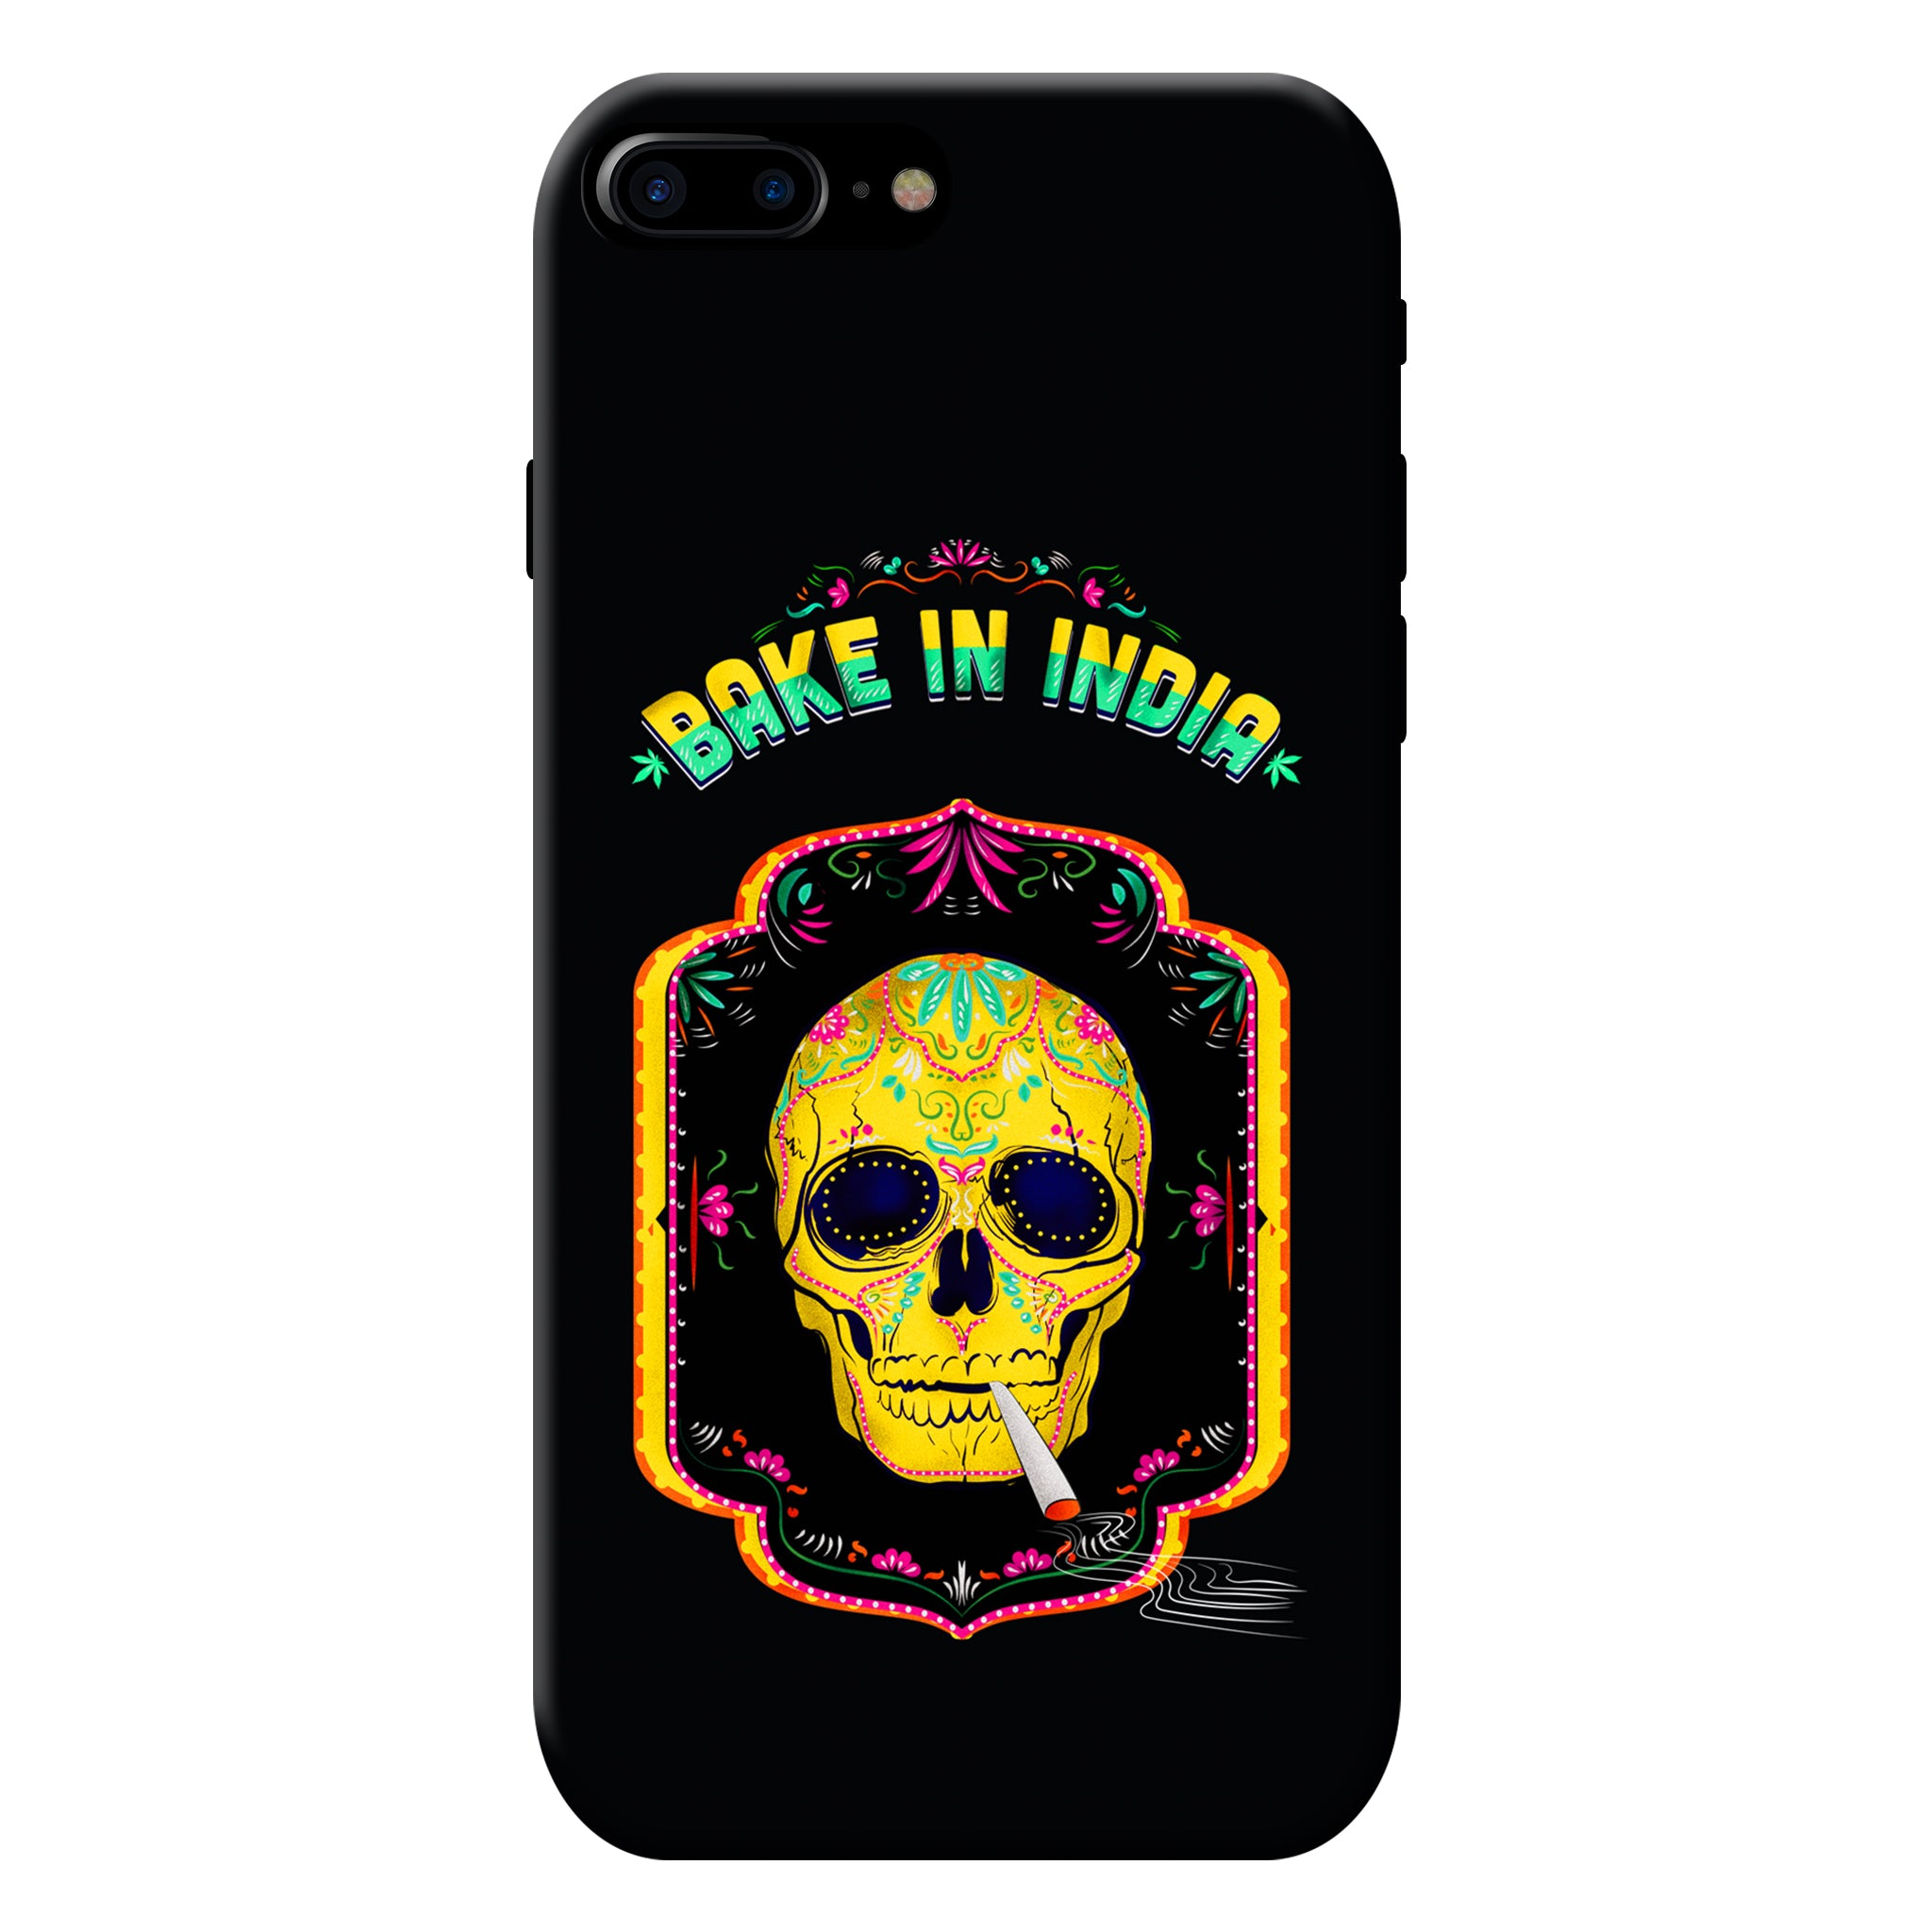 Bake In India Iphone 7 Plus Cover